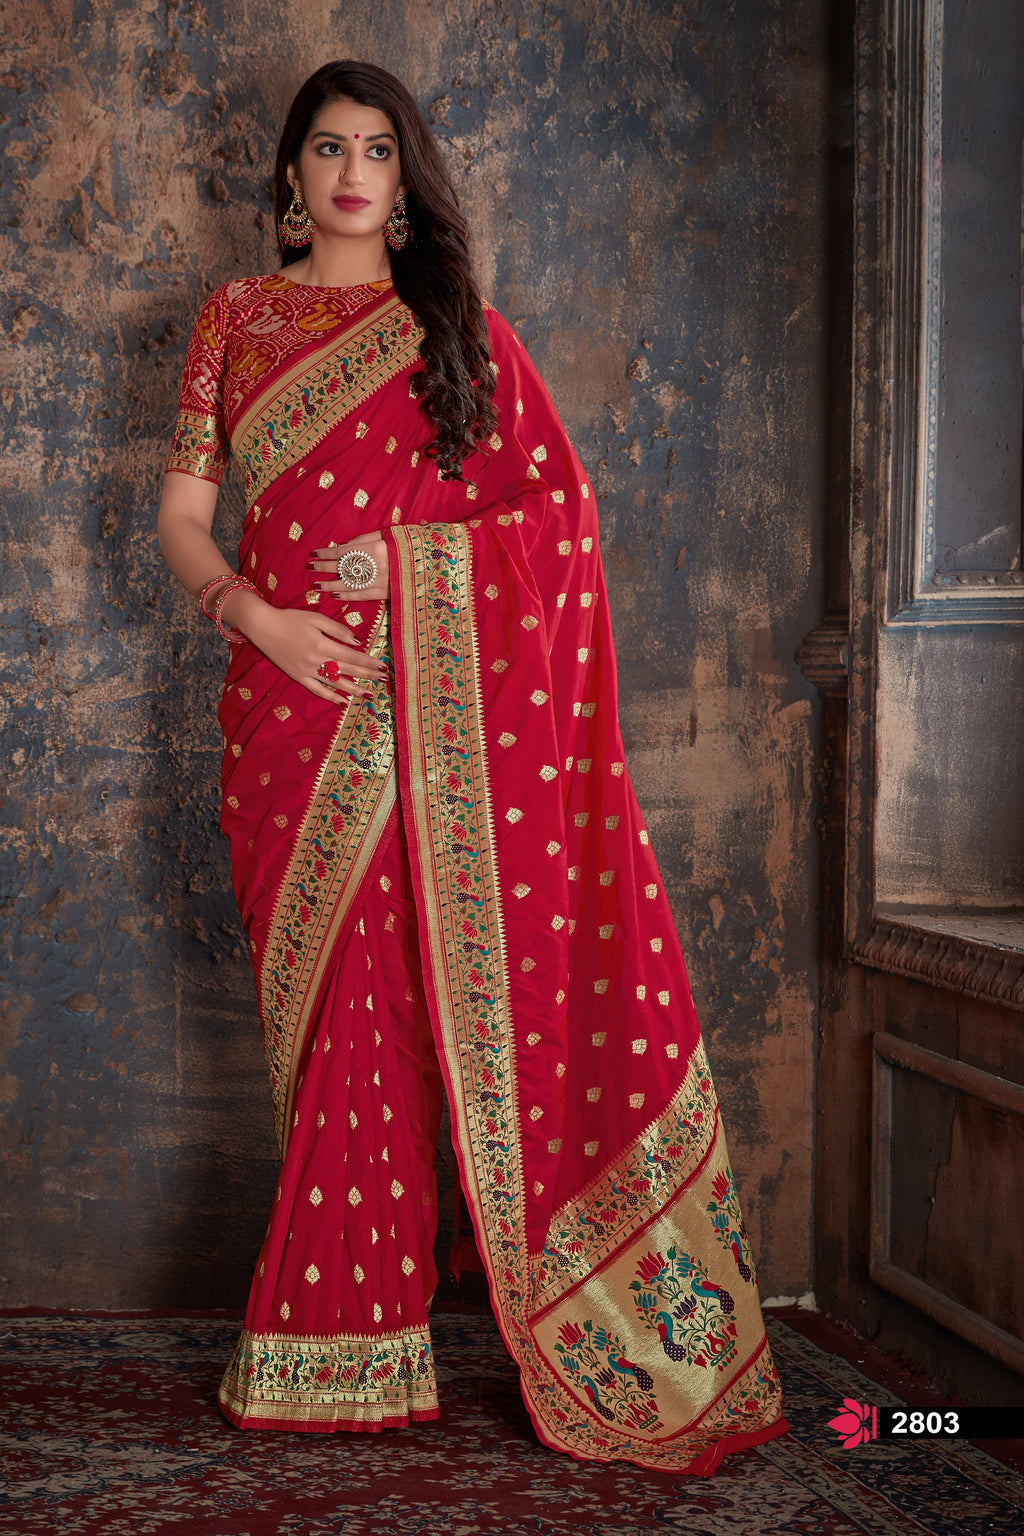 Red Banarasi Silk Indian Wedding Sarees Online Shopping